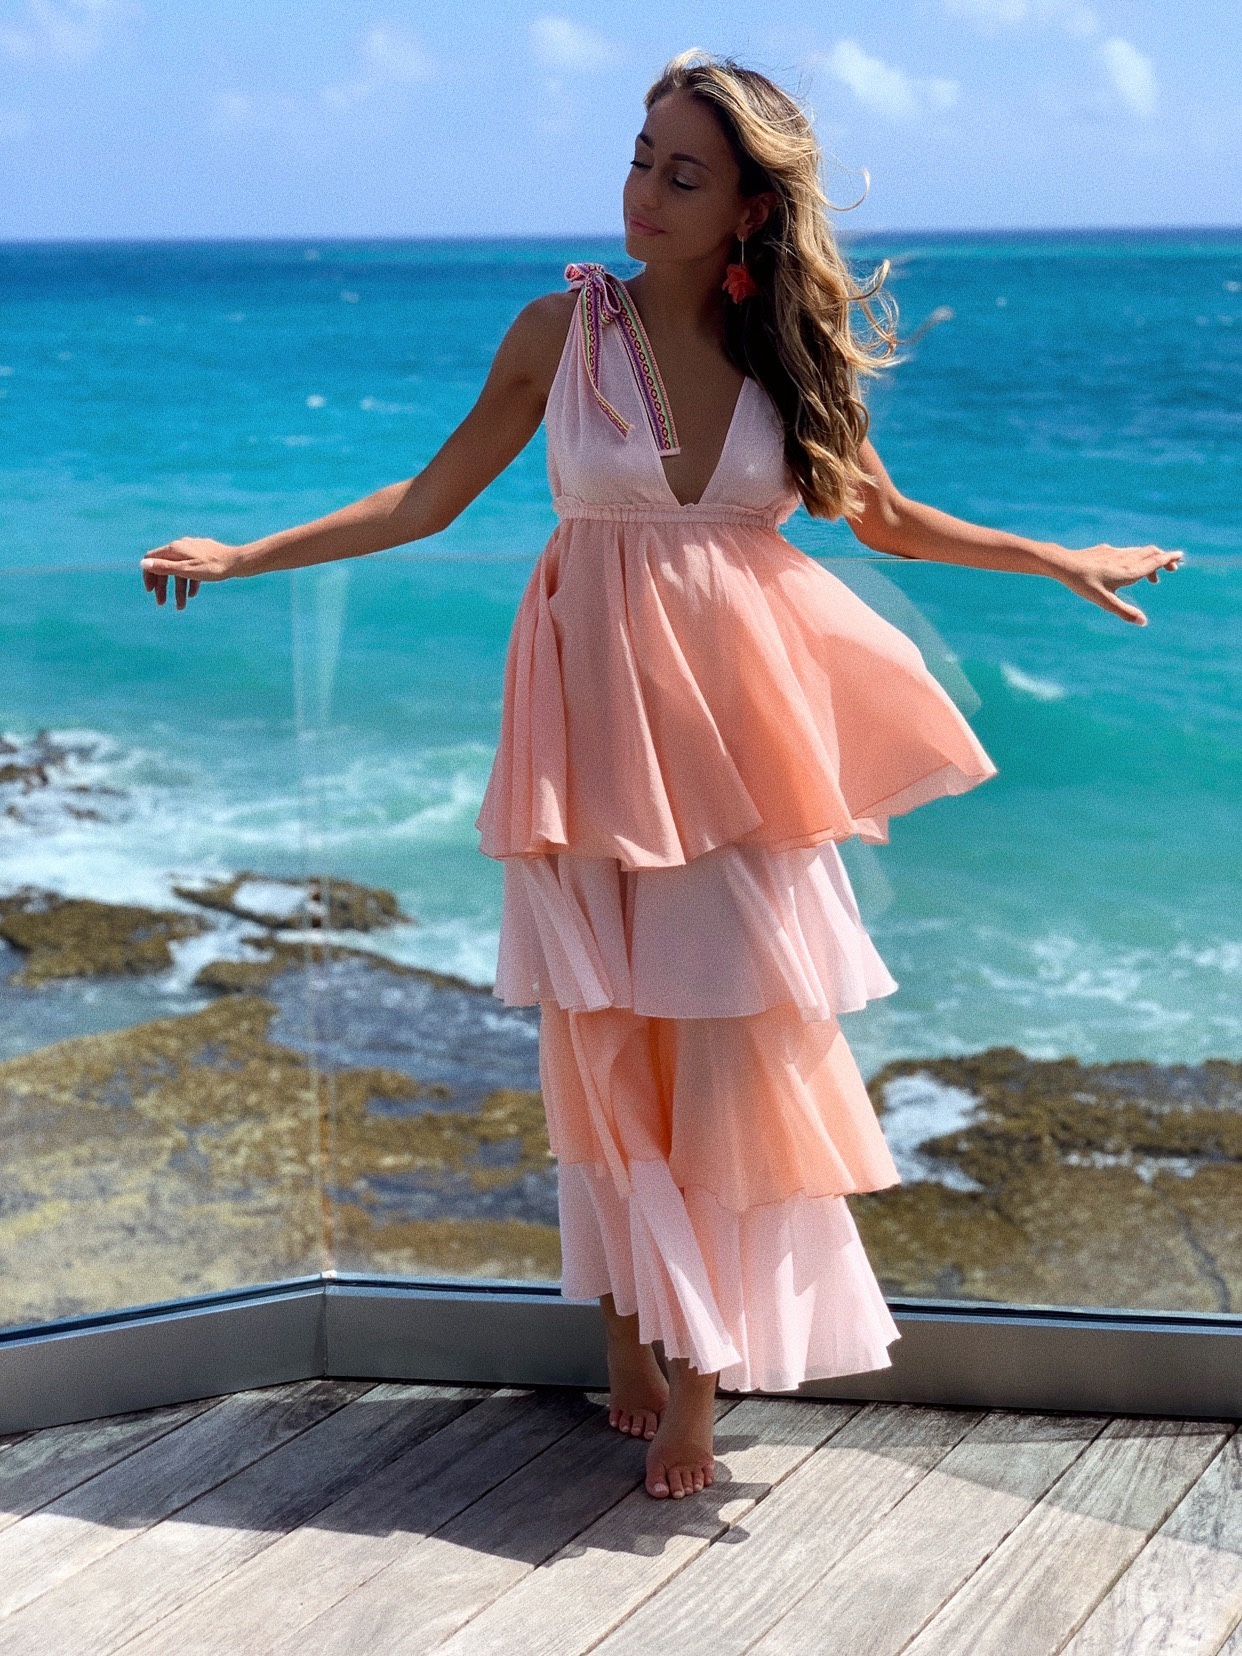 Lauren Recchia wearing a Pitusa pink ruffle dress at the condado vanderbilt in puerto rico